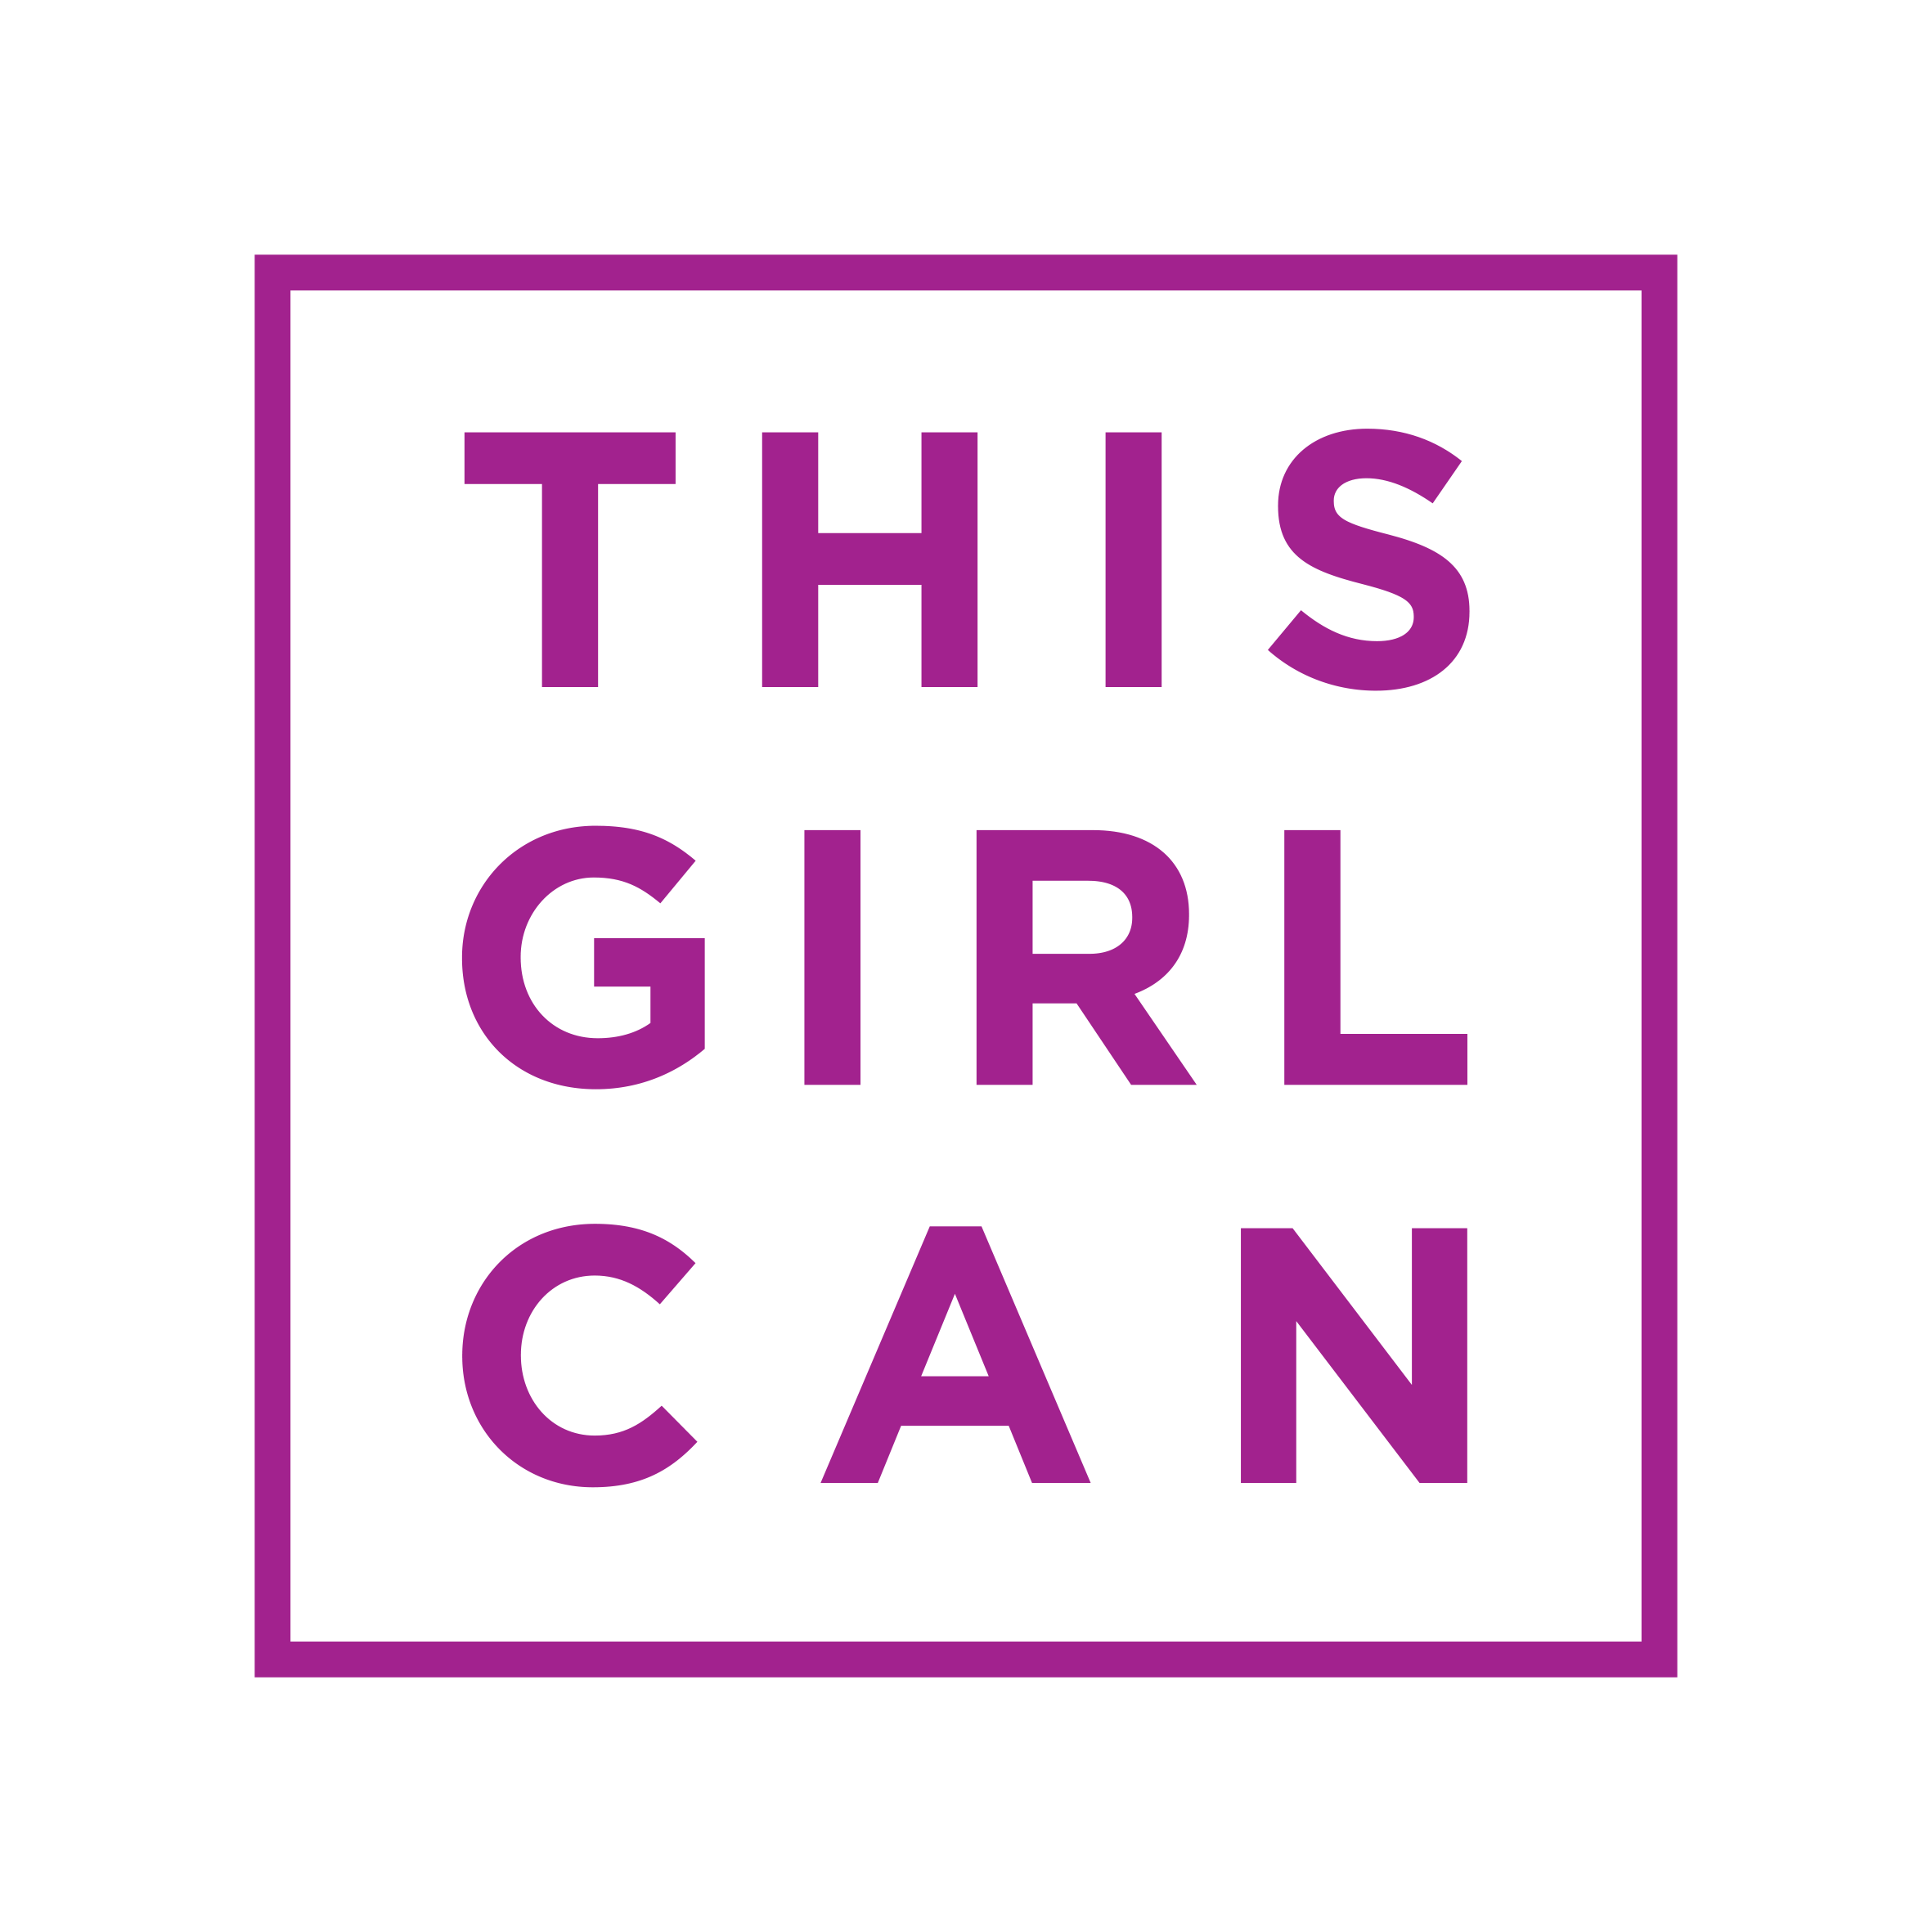 This girl can logo.png